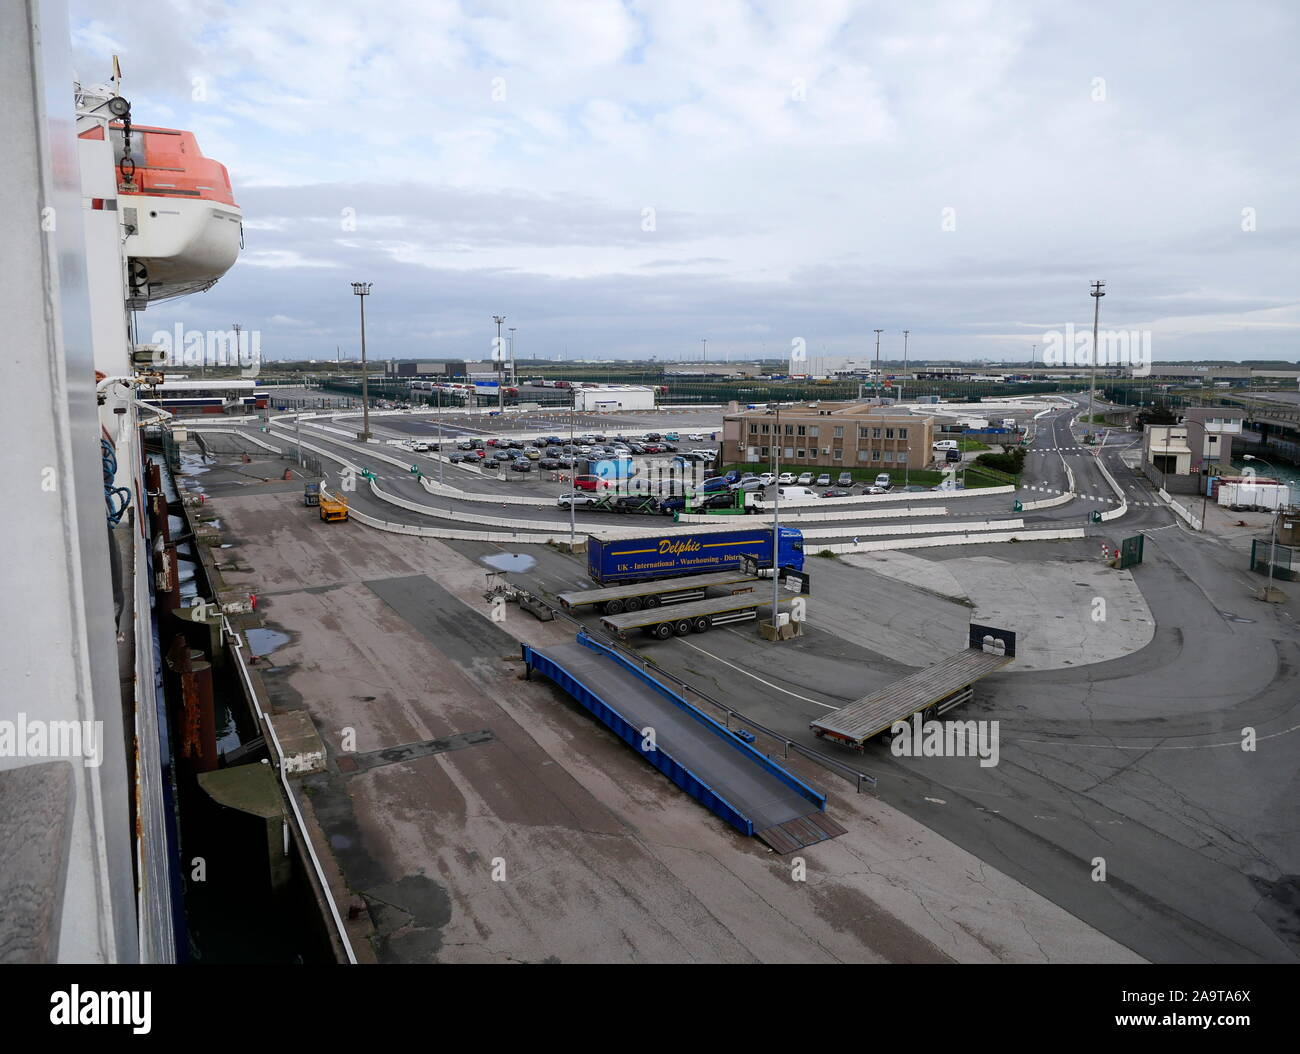 AJAXNETPHOTO. 2019. DUNKERQUE, FRANCE. - FERRY TERMINAL - INFRASTRUCTURE AND PORT OFFICE COMPLEX.PHOTO:JONATHAN EASTLAND/AJAX REF:GX8 191510 20907 Stock Photo